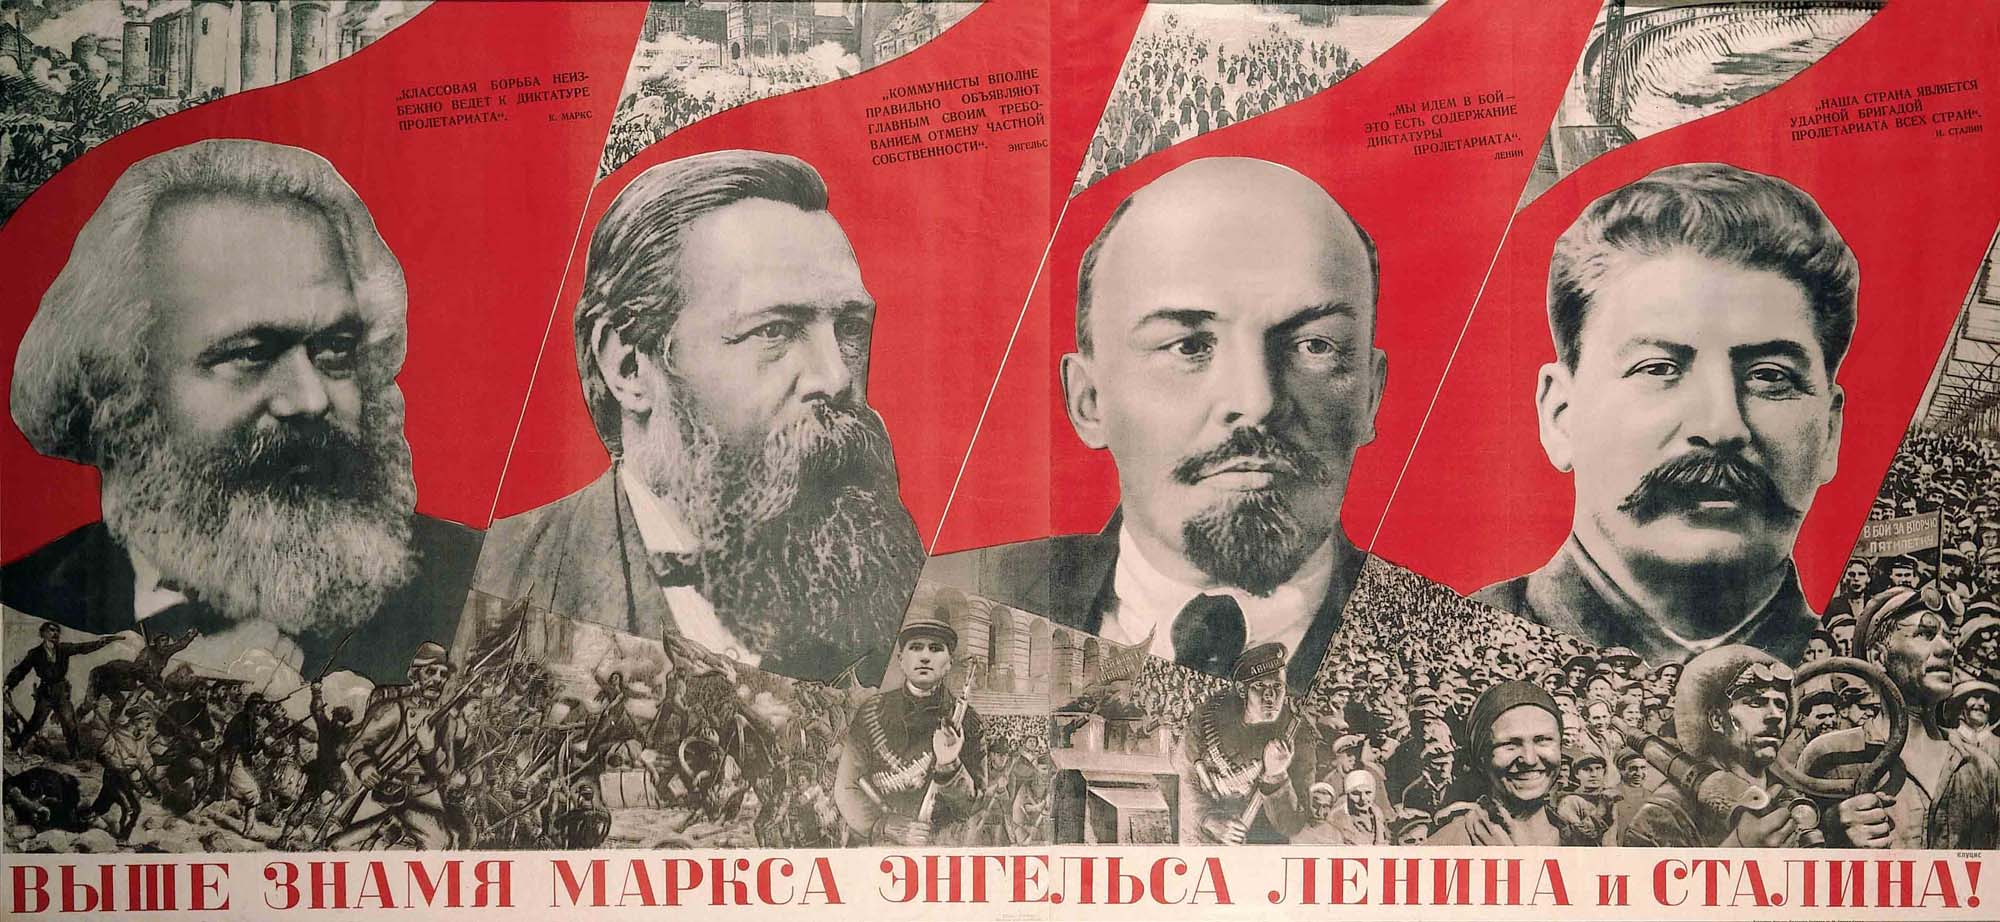 a banner poster showing Marx, Engels, Lenin and Stalin